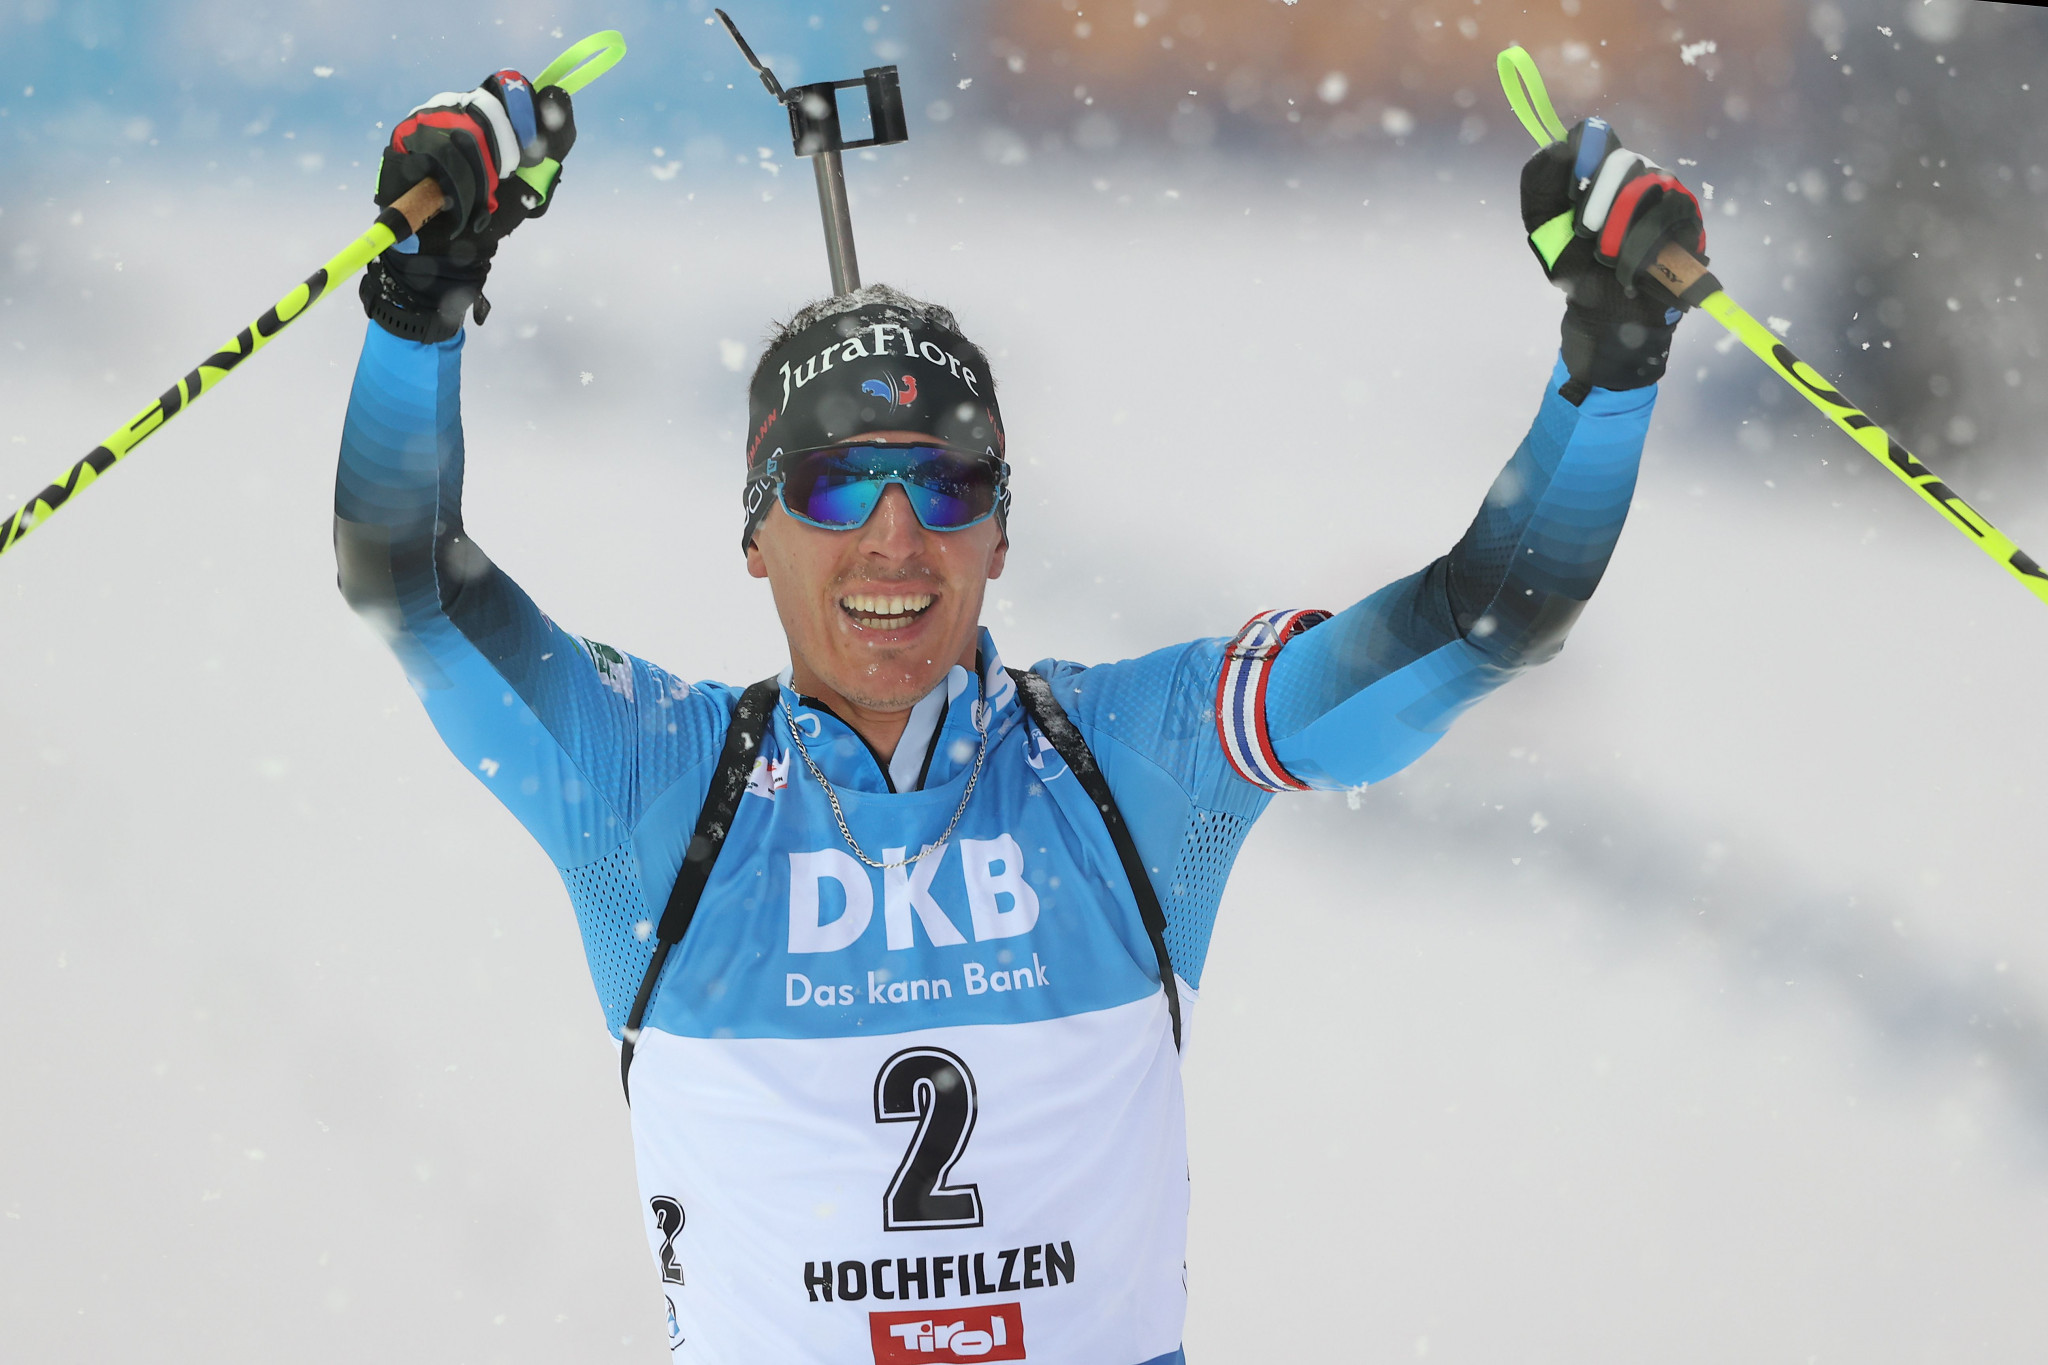 Quentin Fillon Maillet won his fourth World Cup race with a clean shooting record in the men's 12.5km pursuit ©Getty Images